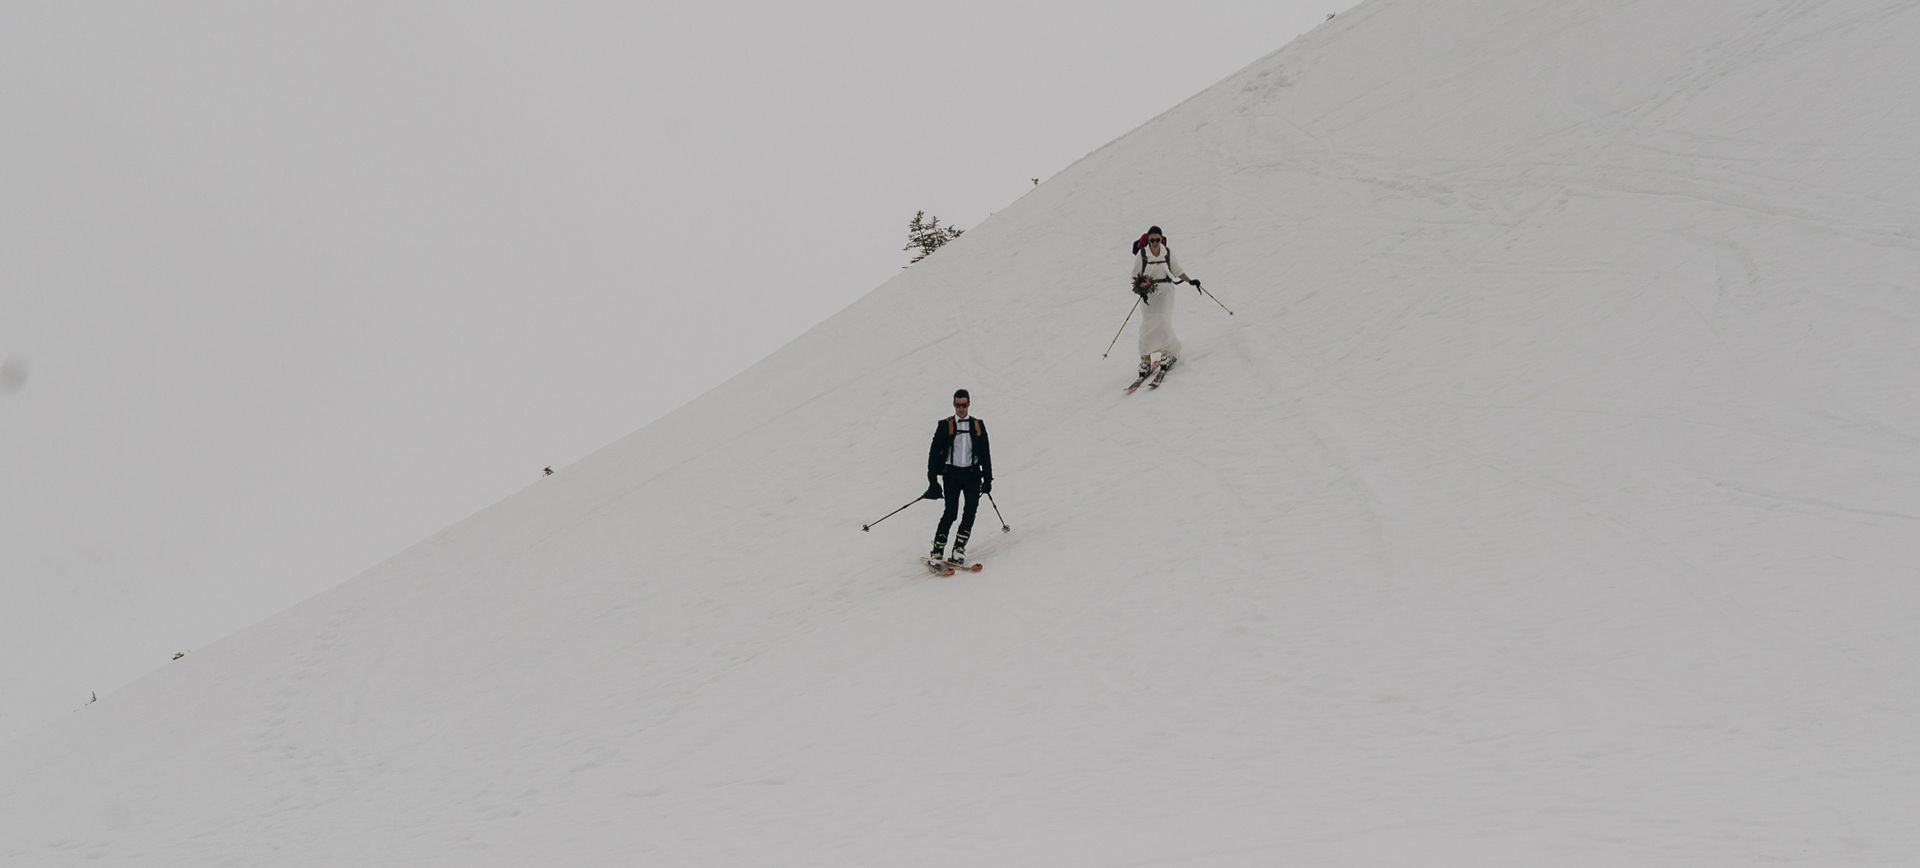 austria winter elopement package - skiing and wellness in the alps